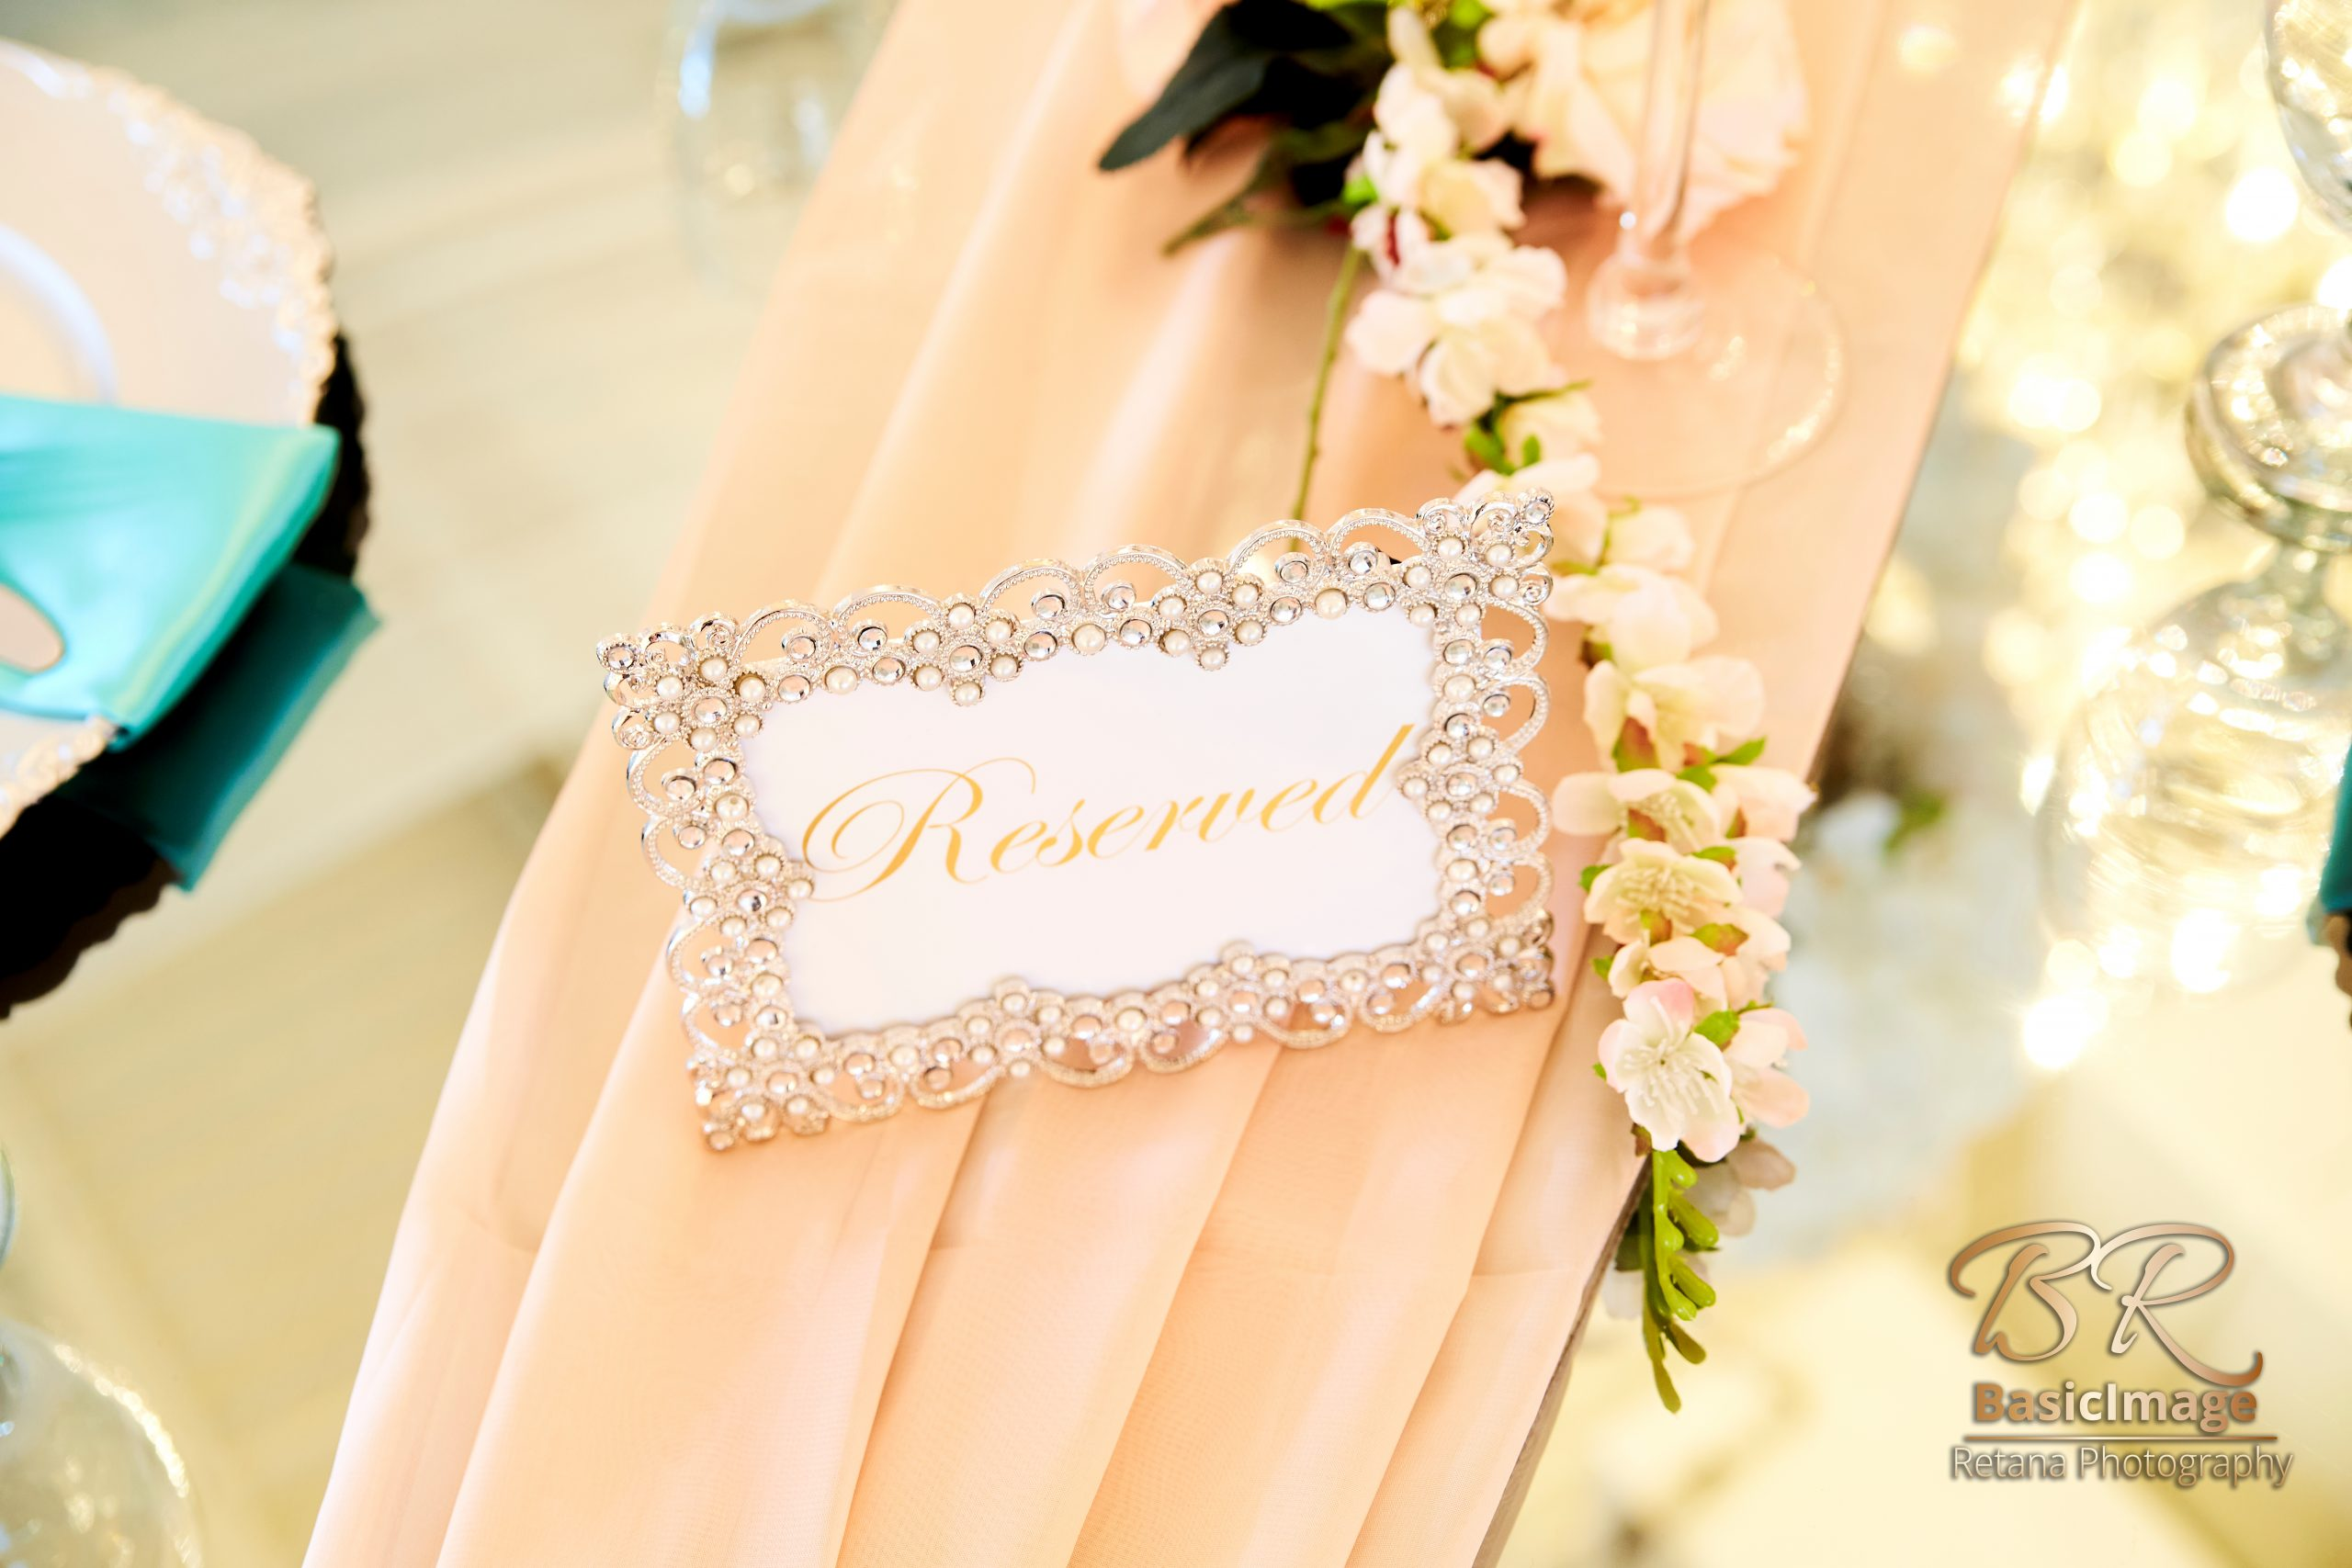 LeVenue dining reserved sign decor